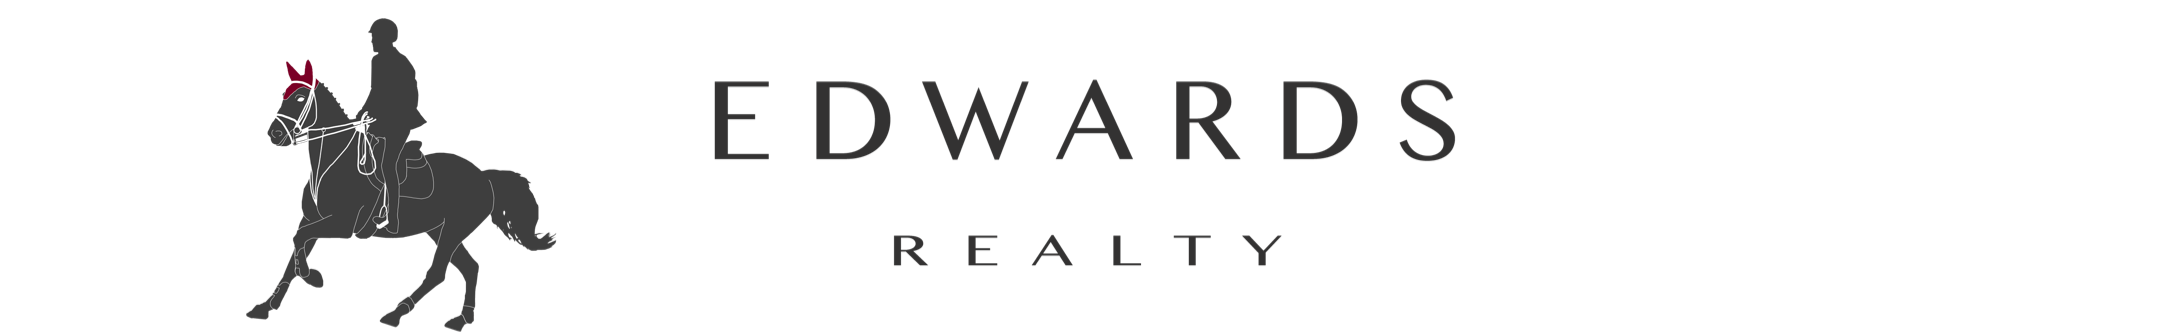 Edwards Realty - Agence Immobilière